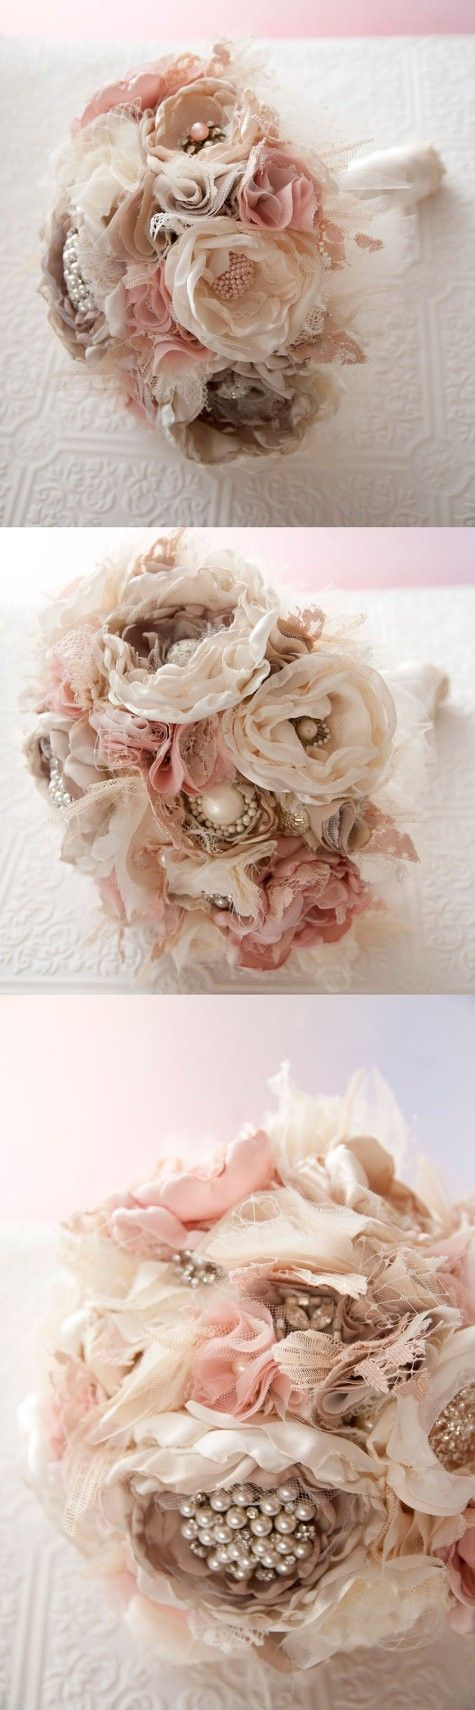 LOVE the lace flowers! I want to learn how to make this!